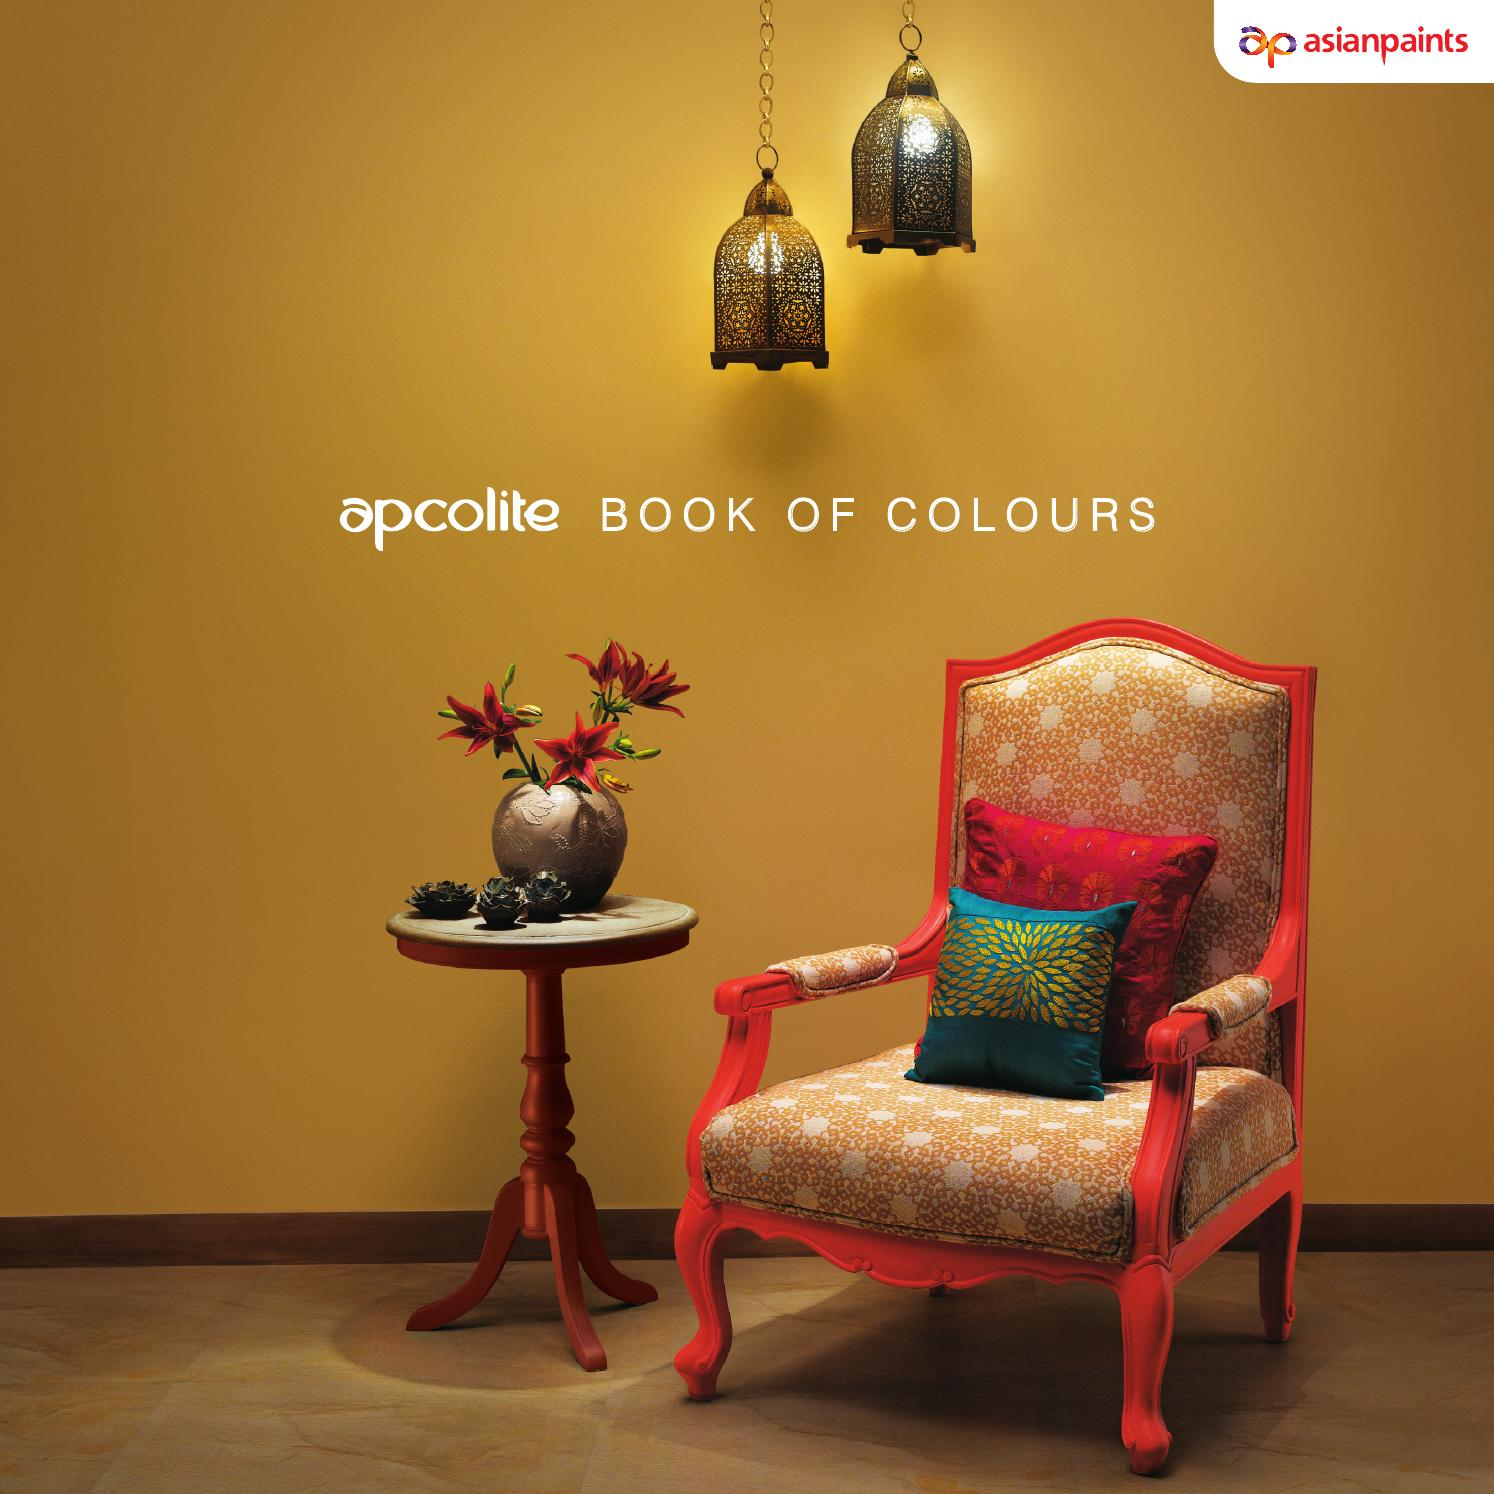 Asian Paints Apcolite Book Of Colours By Asian Paints